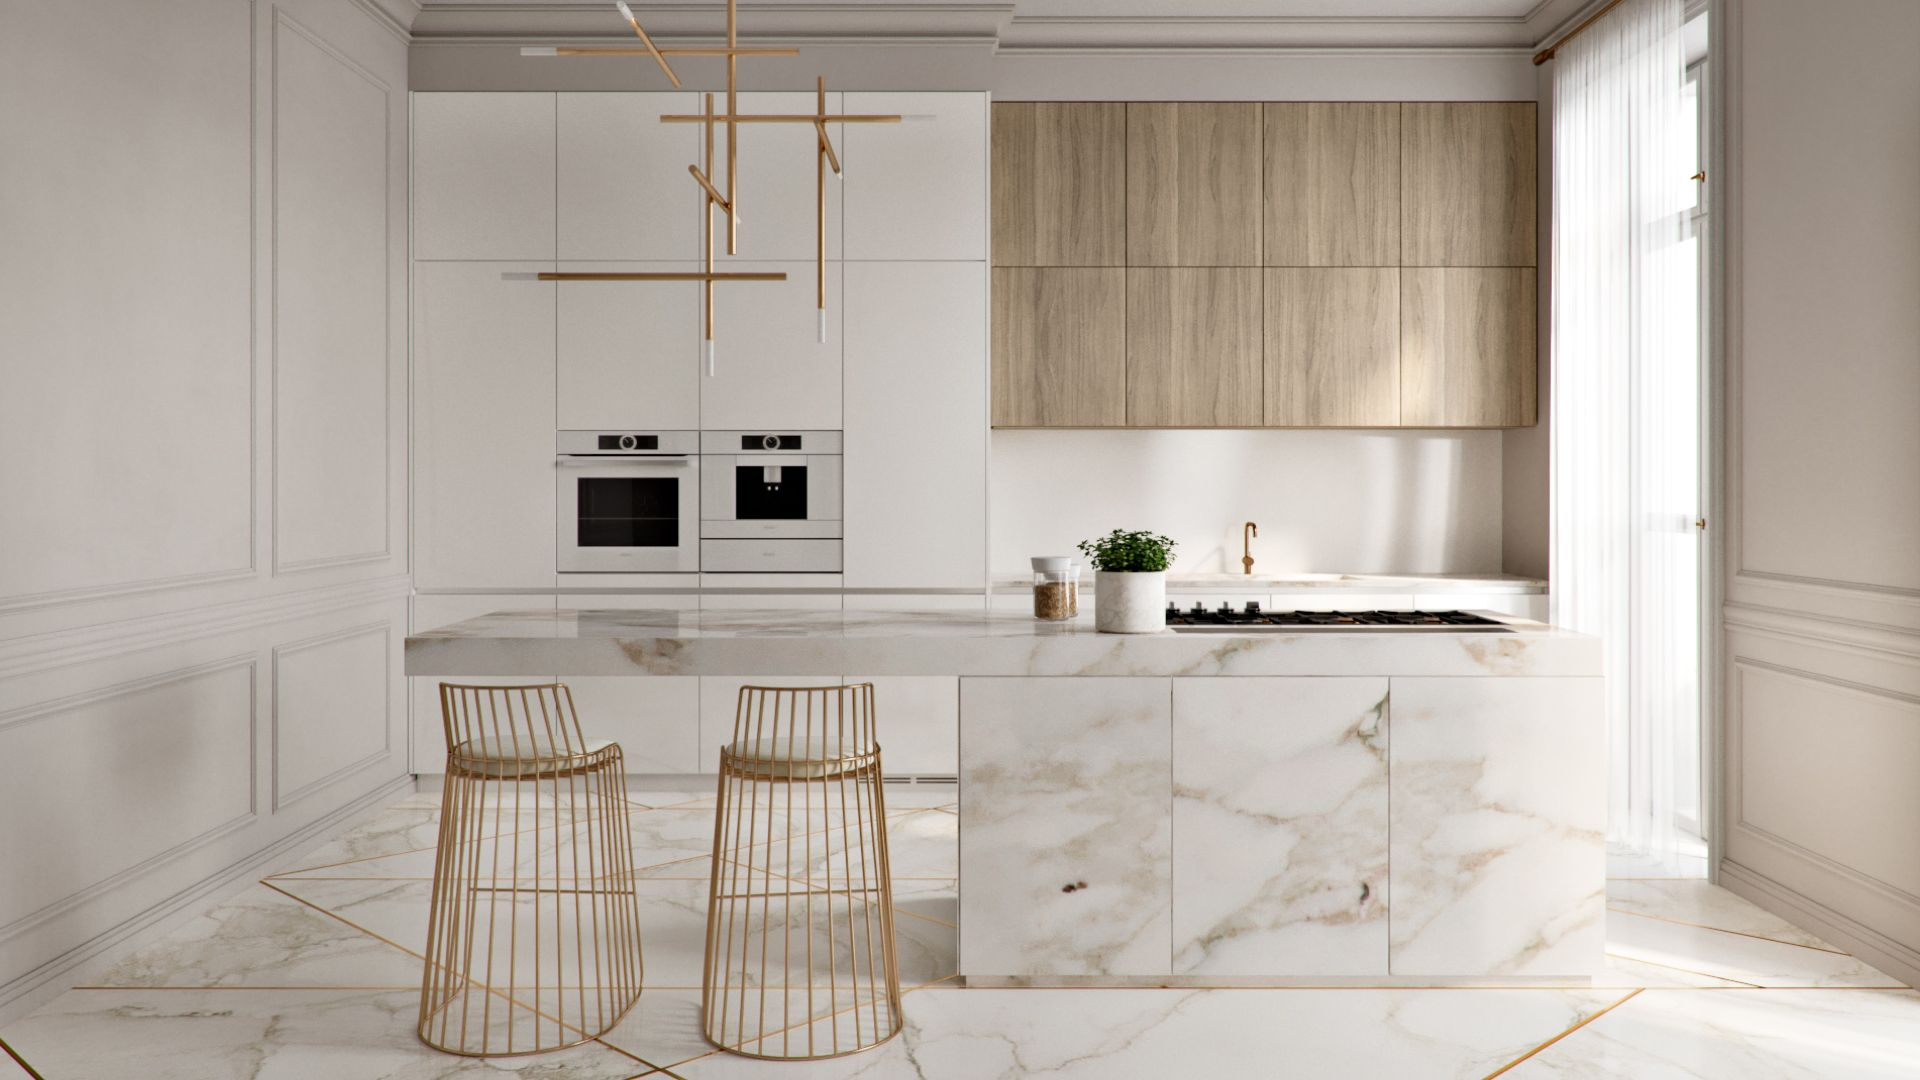 Keuken Art Deco Gold Mramor Floor White Kitchen Art Deco Kitchens Modern